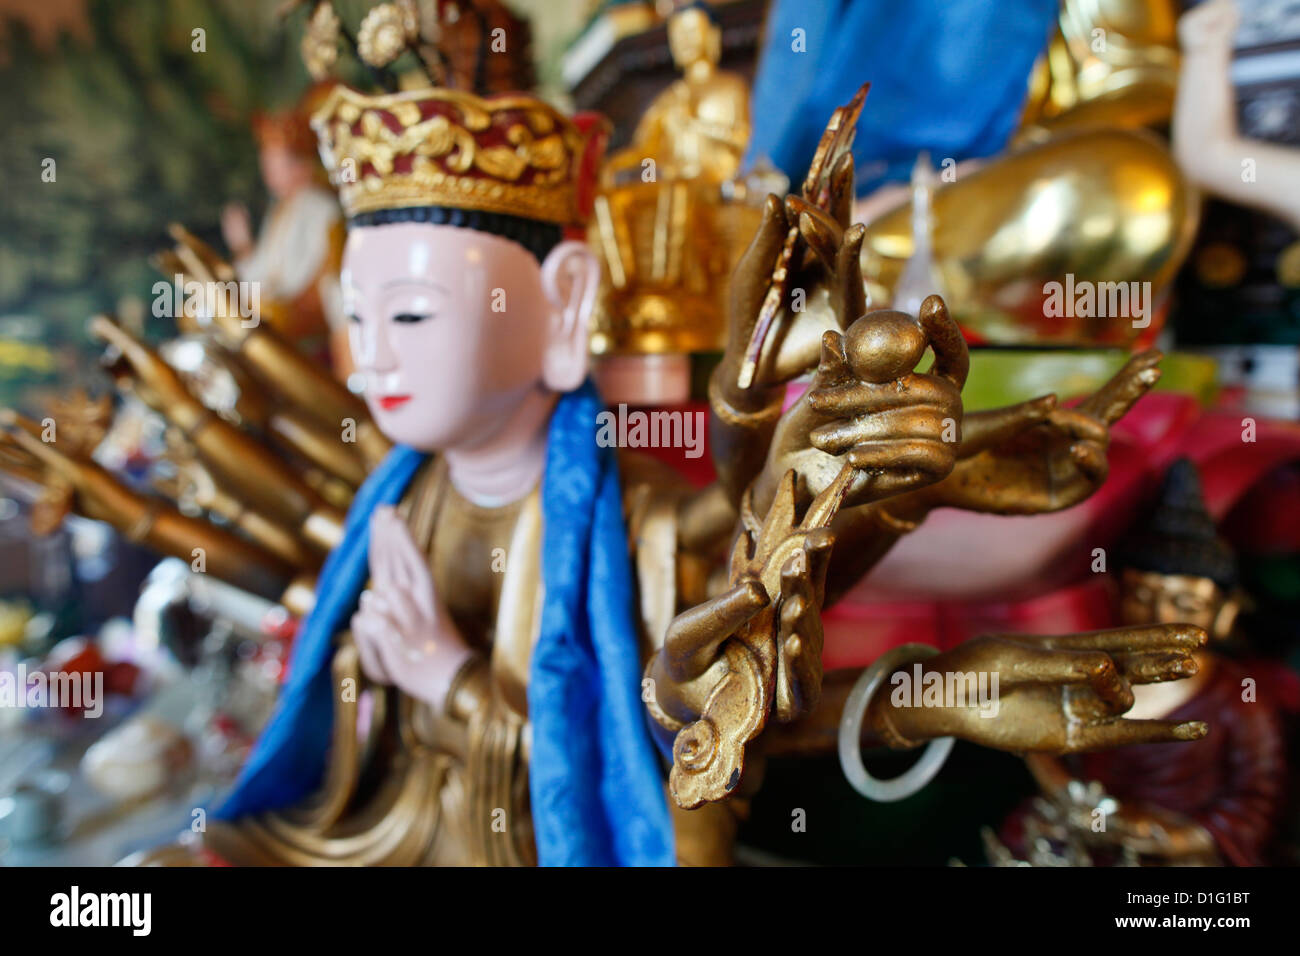 Statue de Bouddha, Tu un temple bouddhiste, Saint-Pierre-en-Faucigny, Haute Savoie, France, Europe Photo Stock